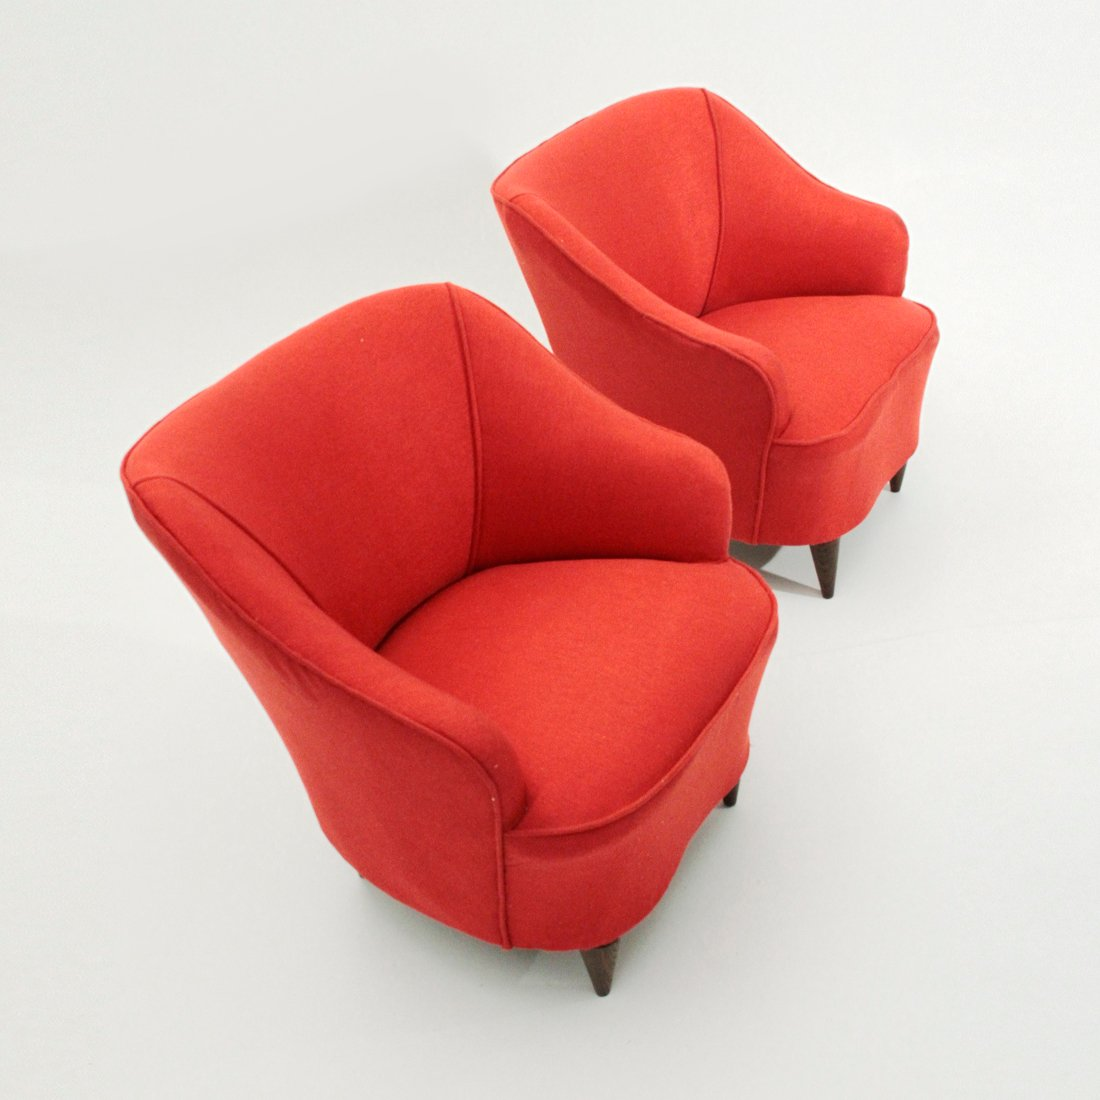 Italian red armchairs 1940s set of 2 for sale at pamono for 2 armchairs for sale